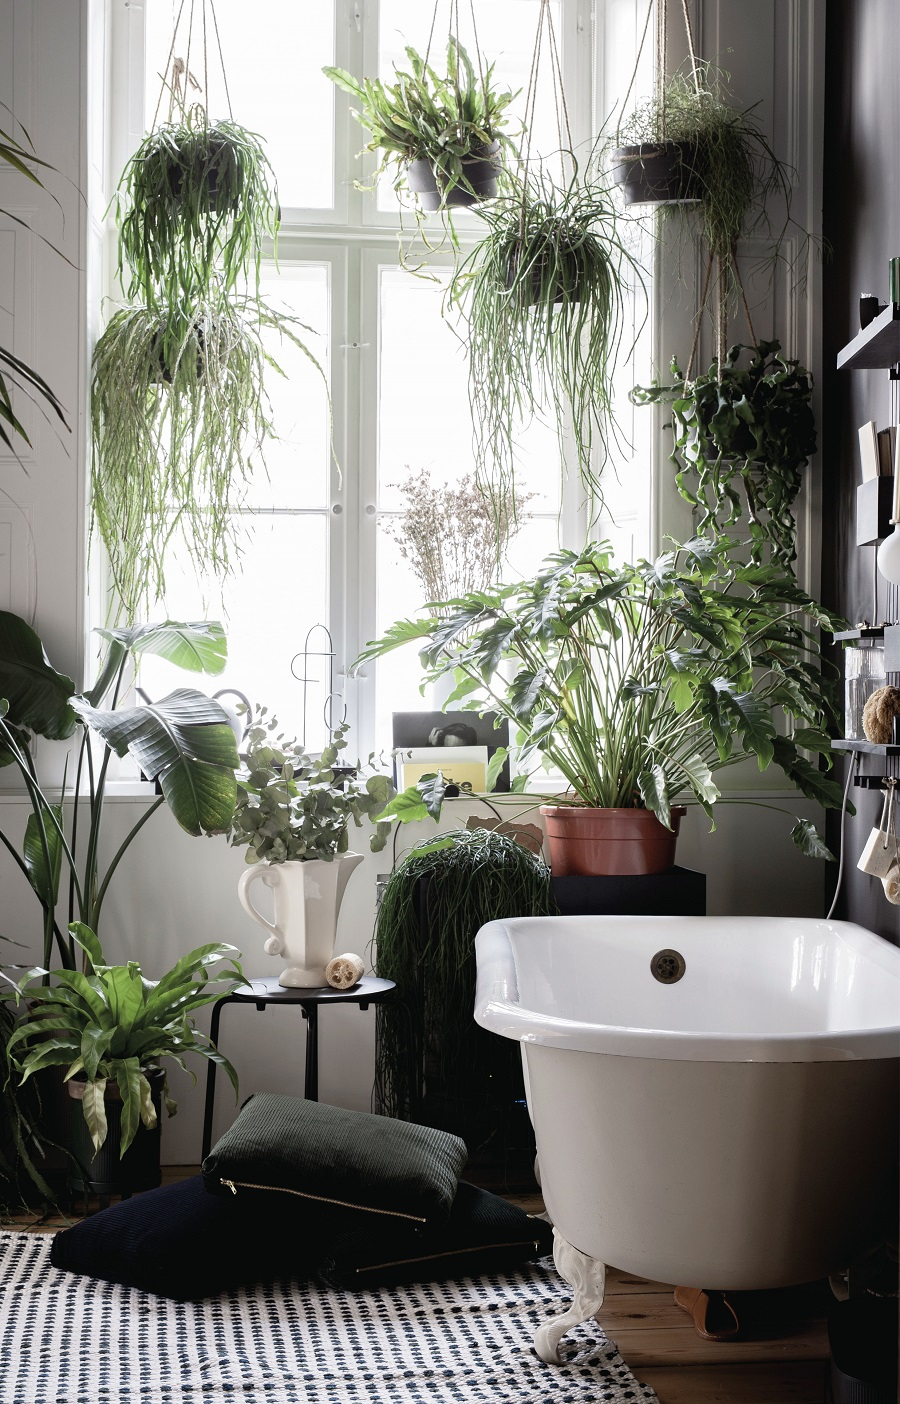 How To Turn Your Bathroom Into Your Own Personal Spa